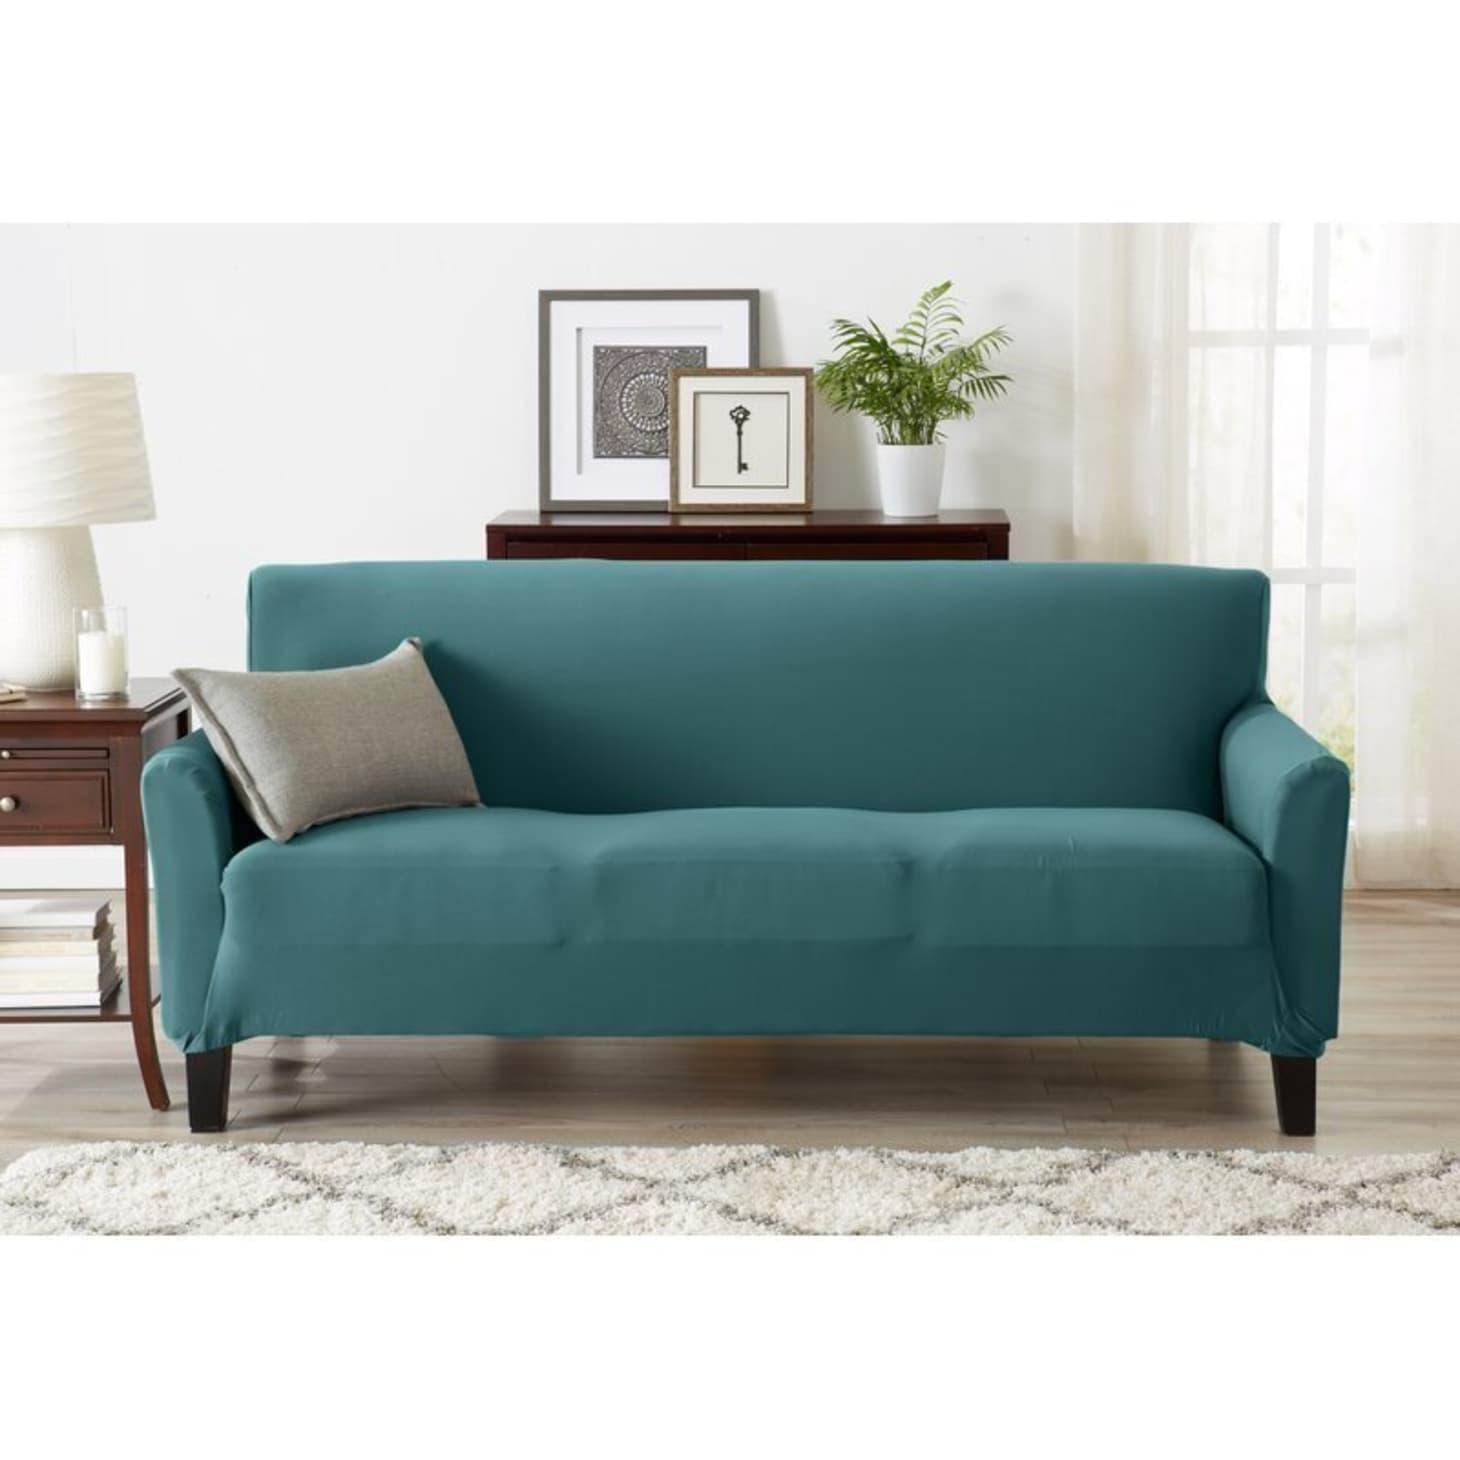 Surprising The Best Slipcovers For Your Couch Apartment Therapy Onthecornerstone Fun Painted Chair Ideas Images Onthecornerstoneorg